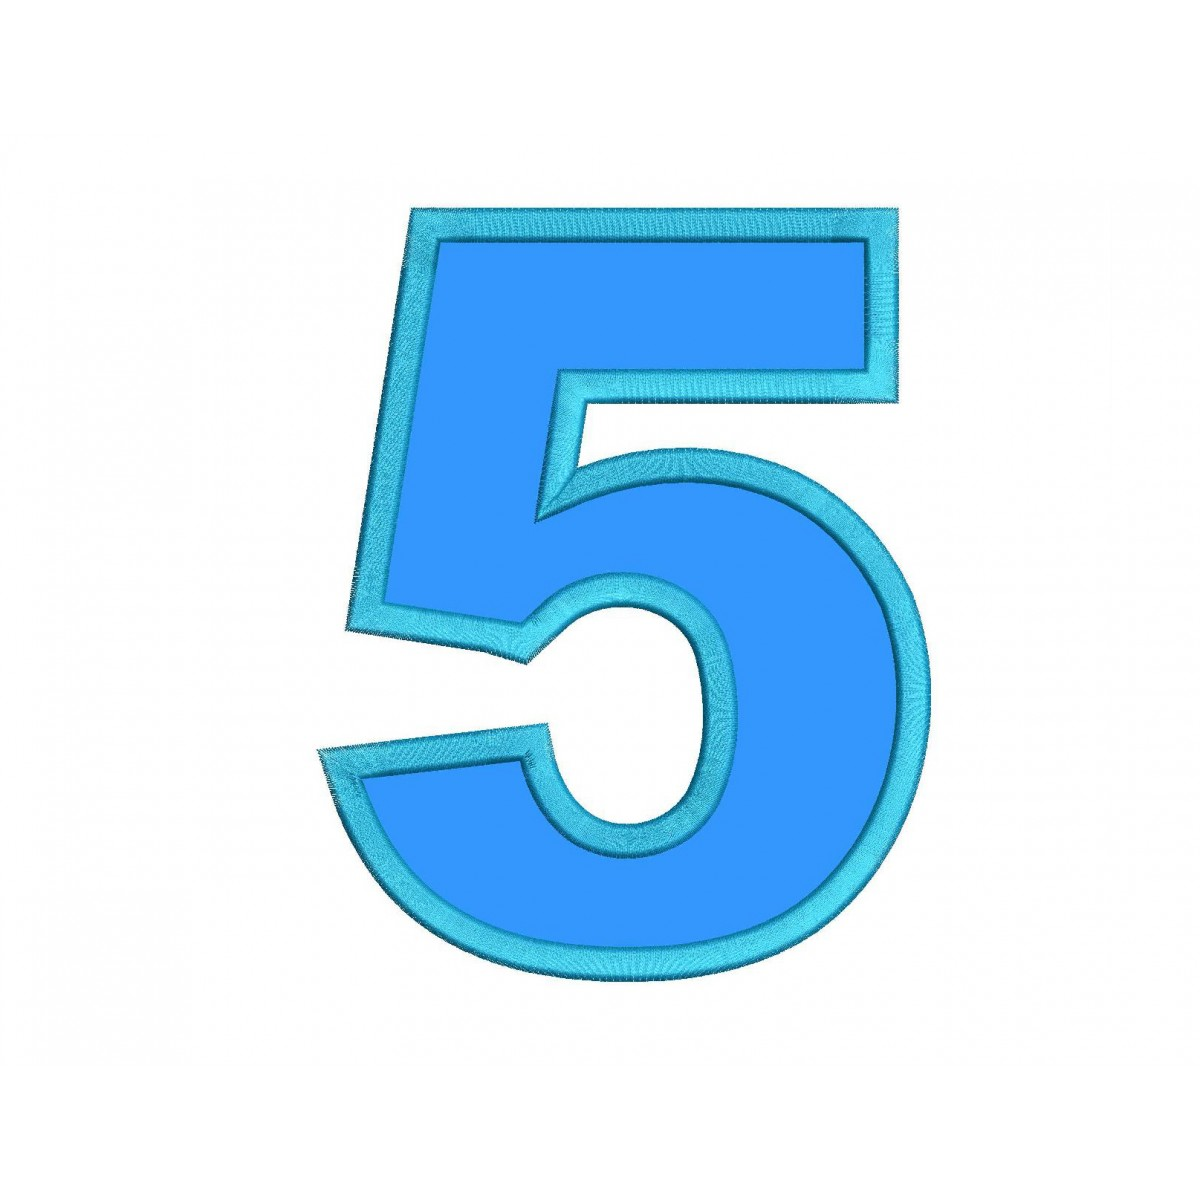 Number 5 Pic - Animated Number 5 Gif, HD Png Download